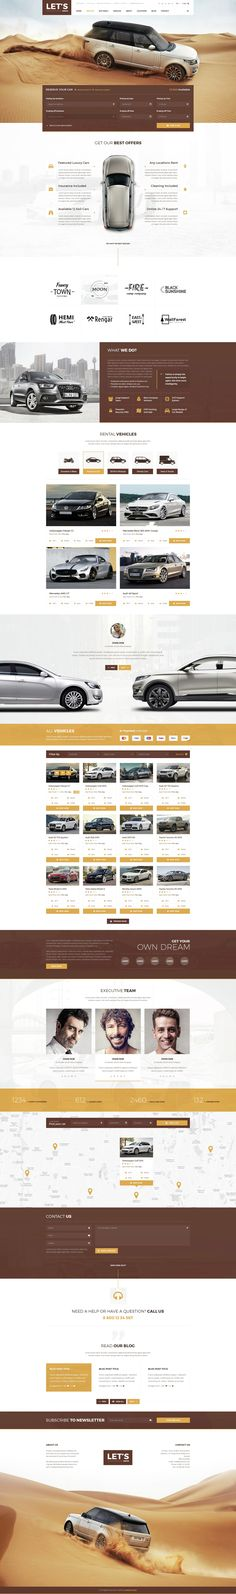 Let's Drive - Amazing Car Rental & Sale PSD Template - PSD Templates